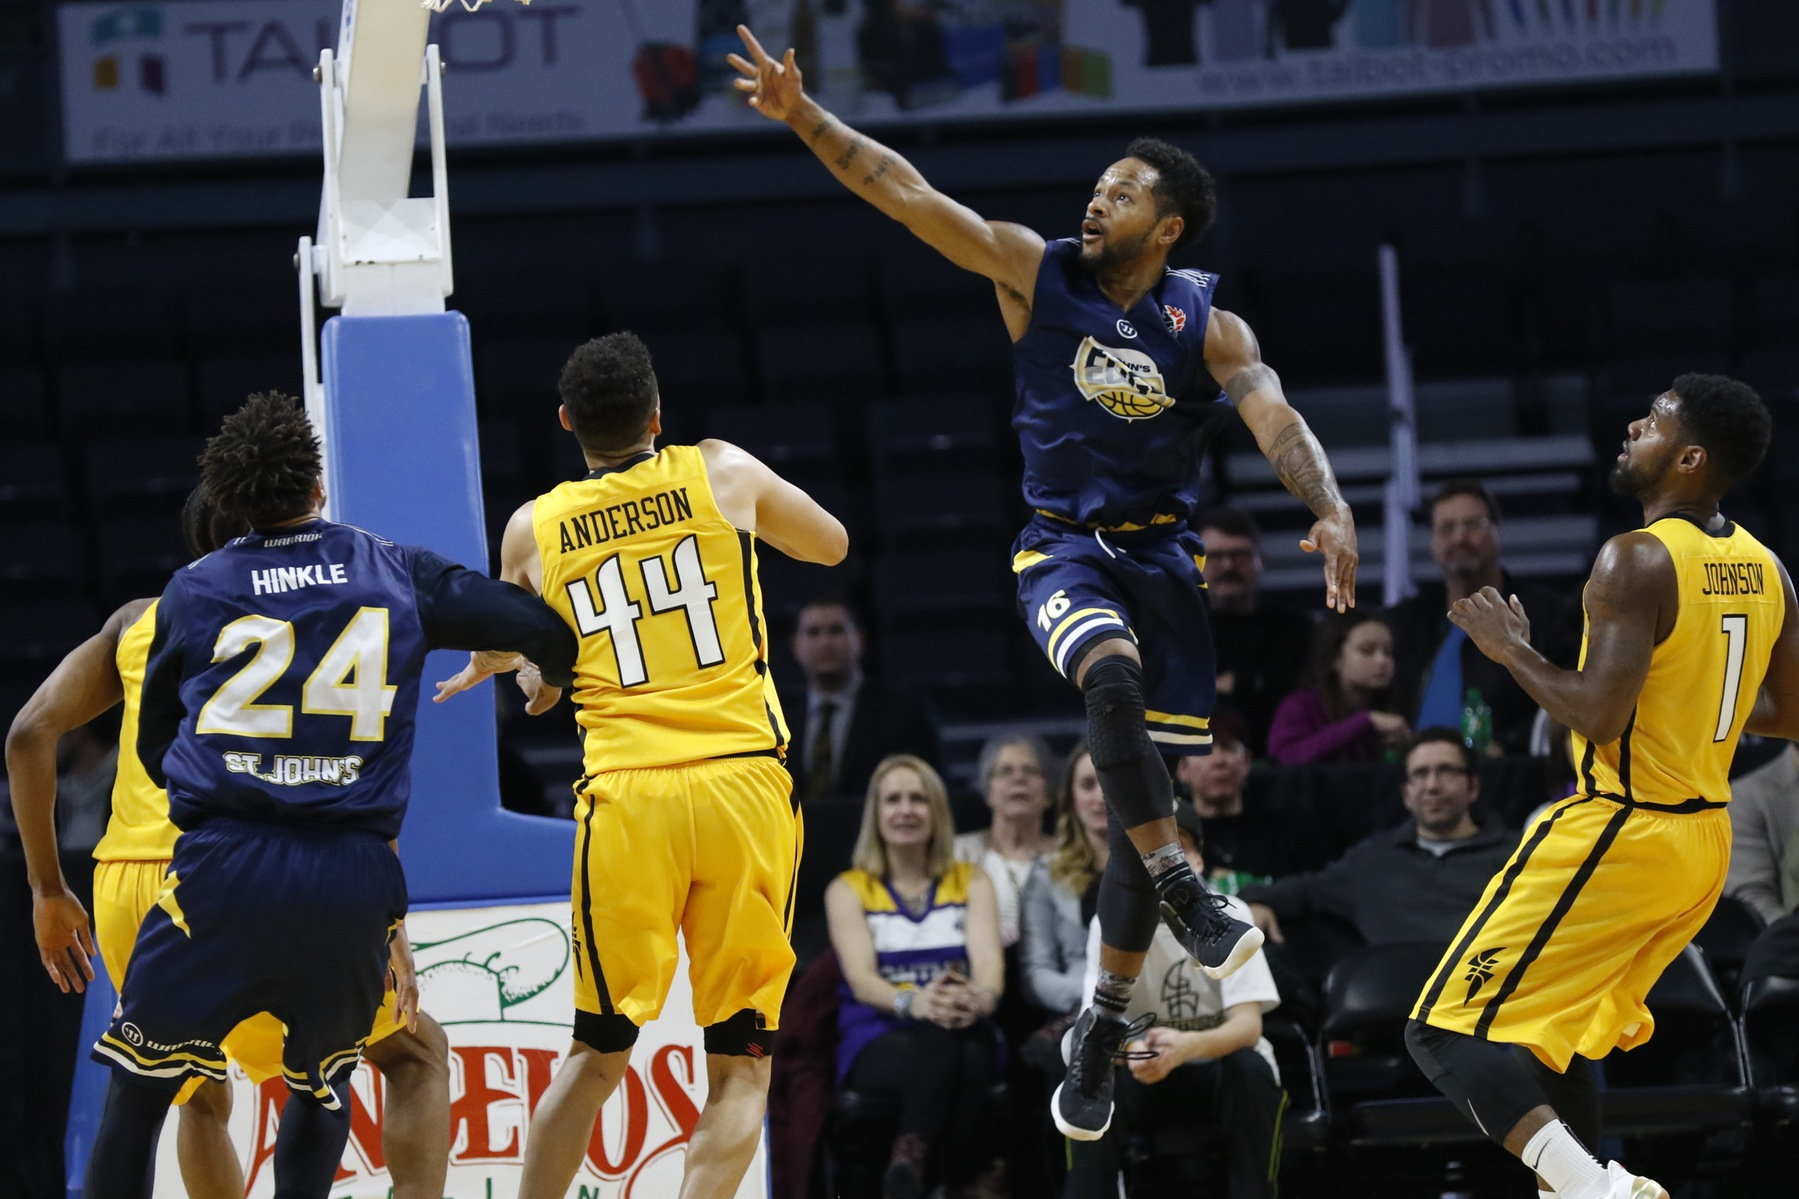 Edge Drop Final Game of 2017 to the London Lightning